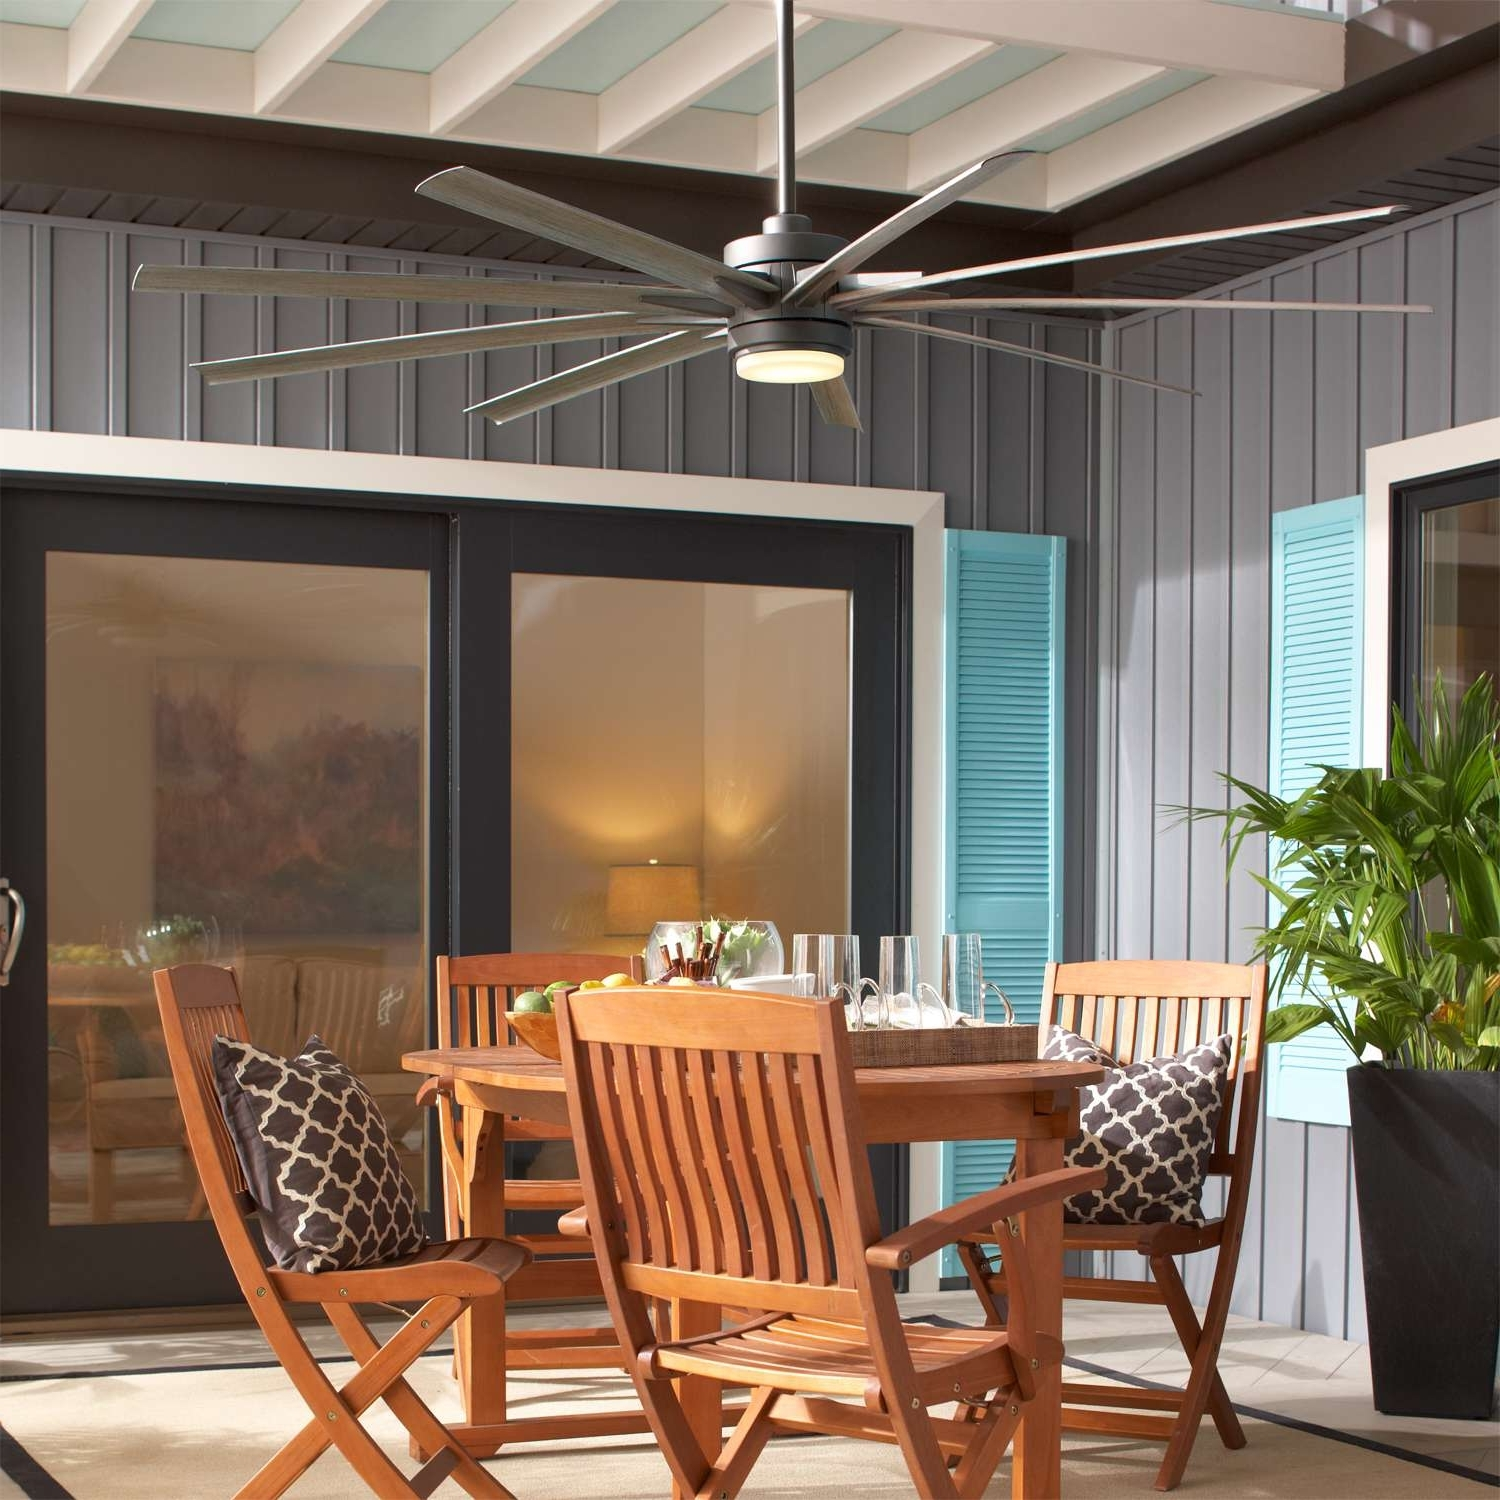 Outdoor Patio Ceiling Fans (View 2 of 20)